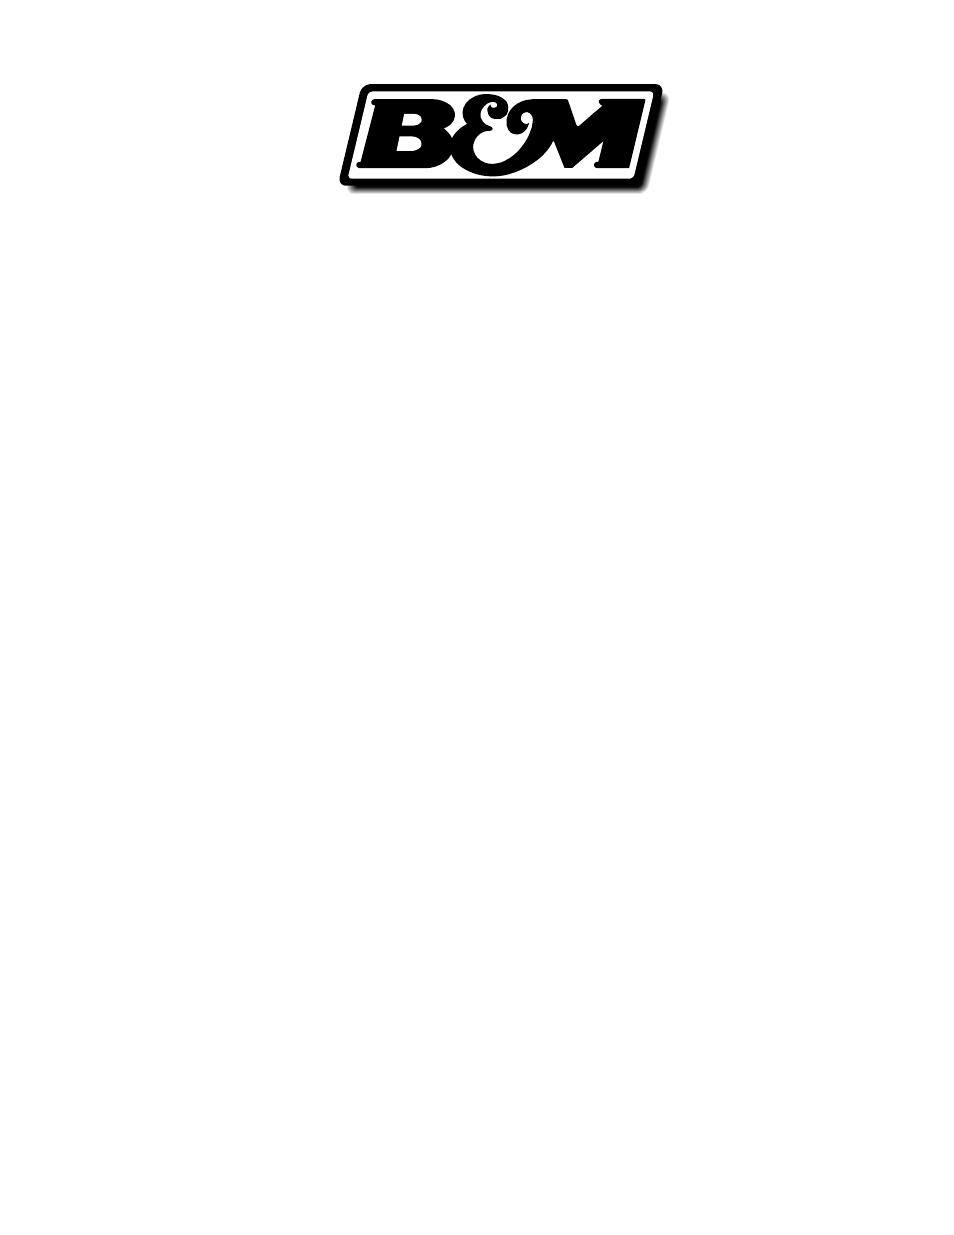 b&m pro stick instructions